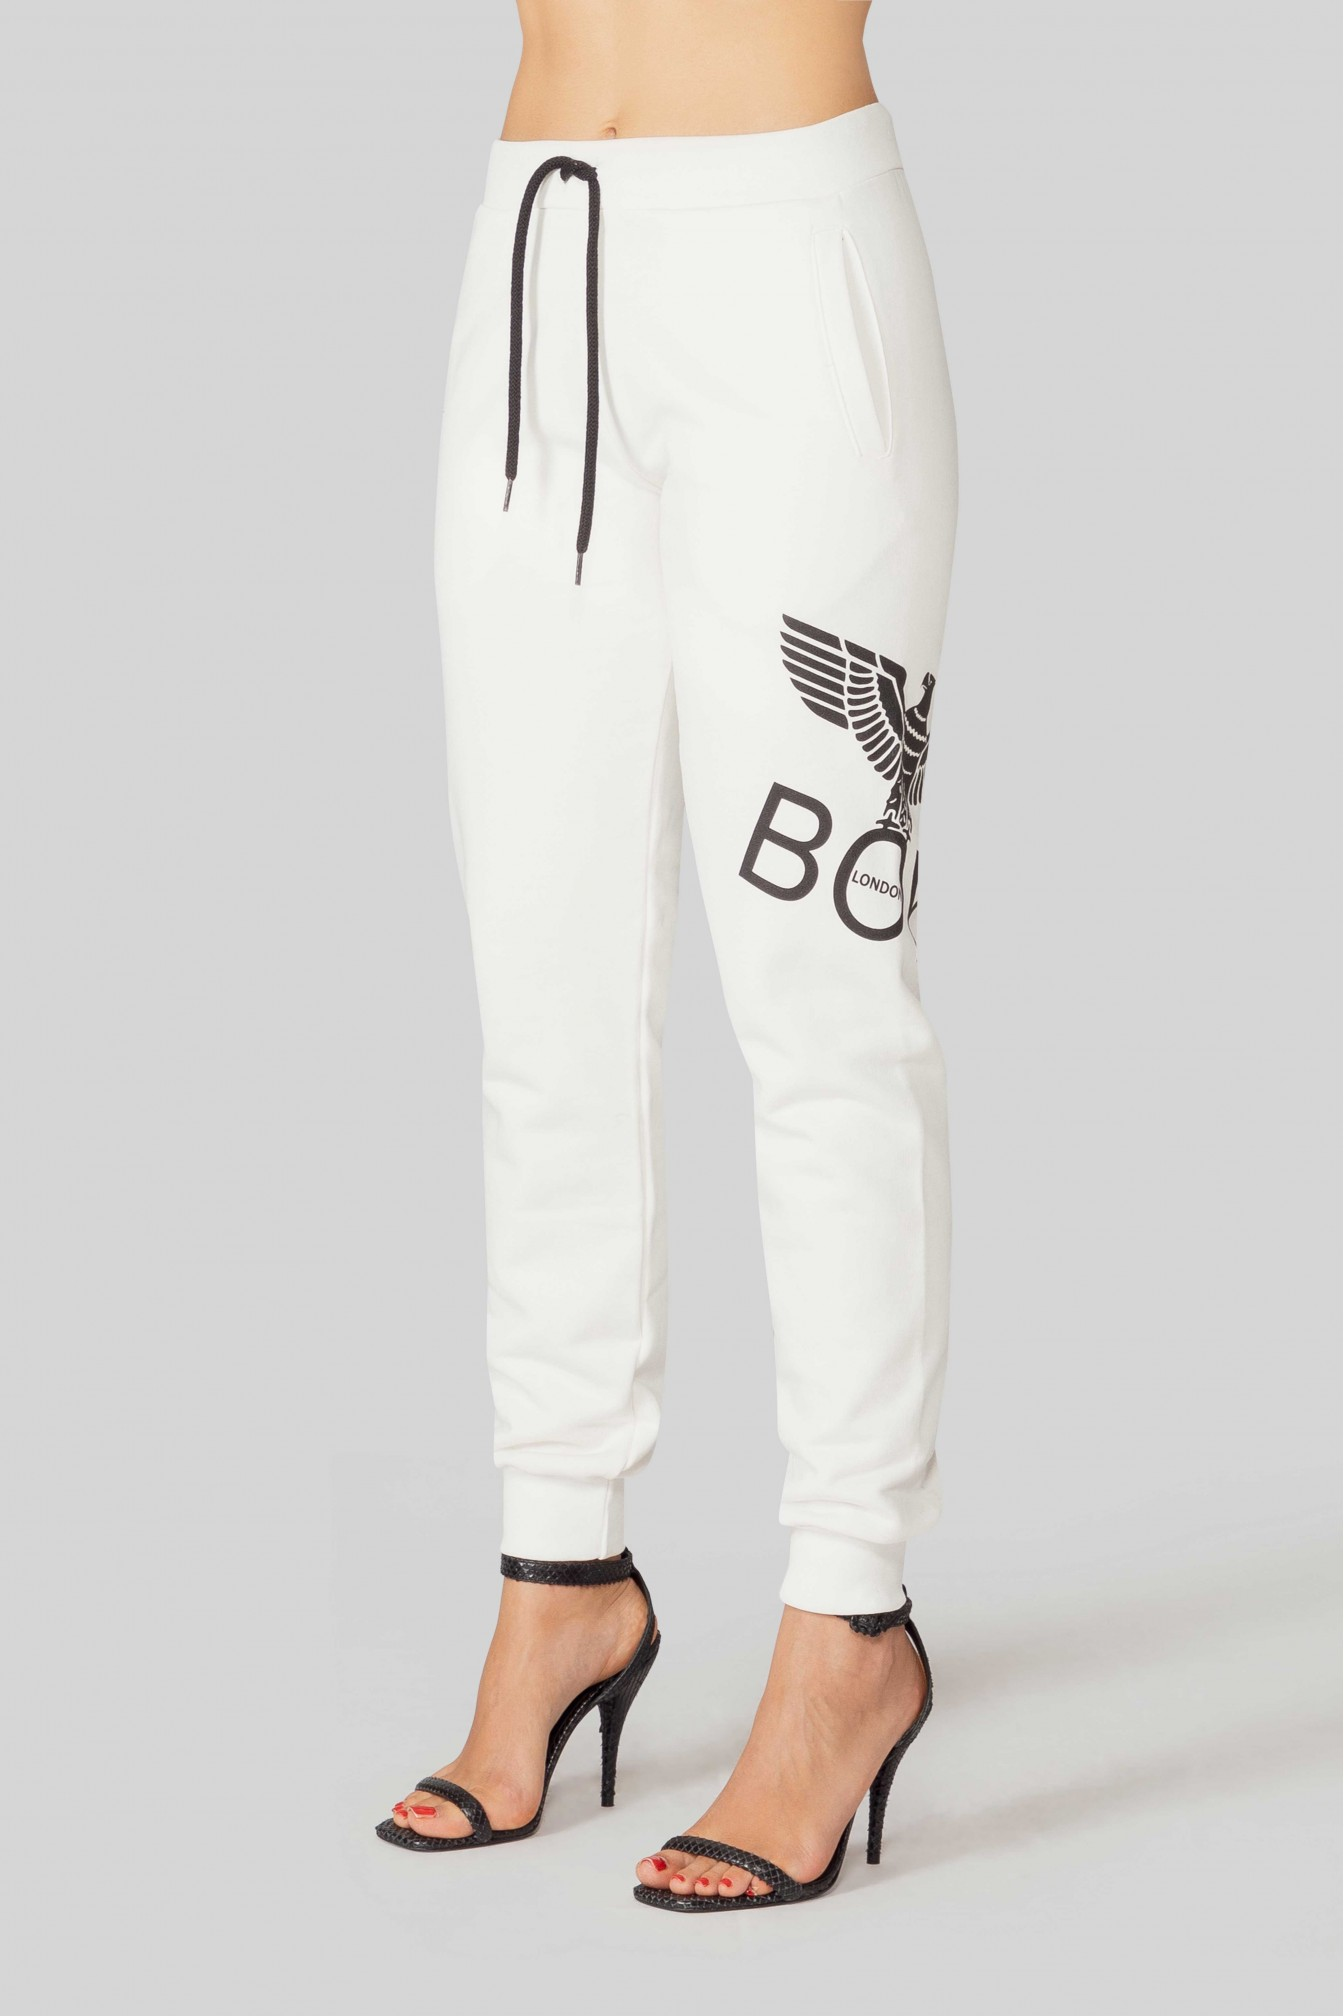 PANTALONE - BLD2638 - BOY LONDON